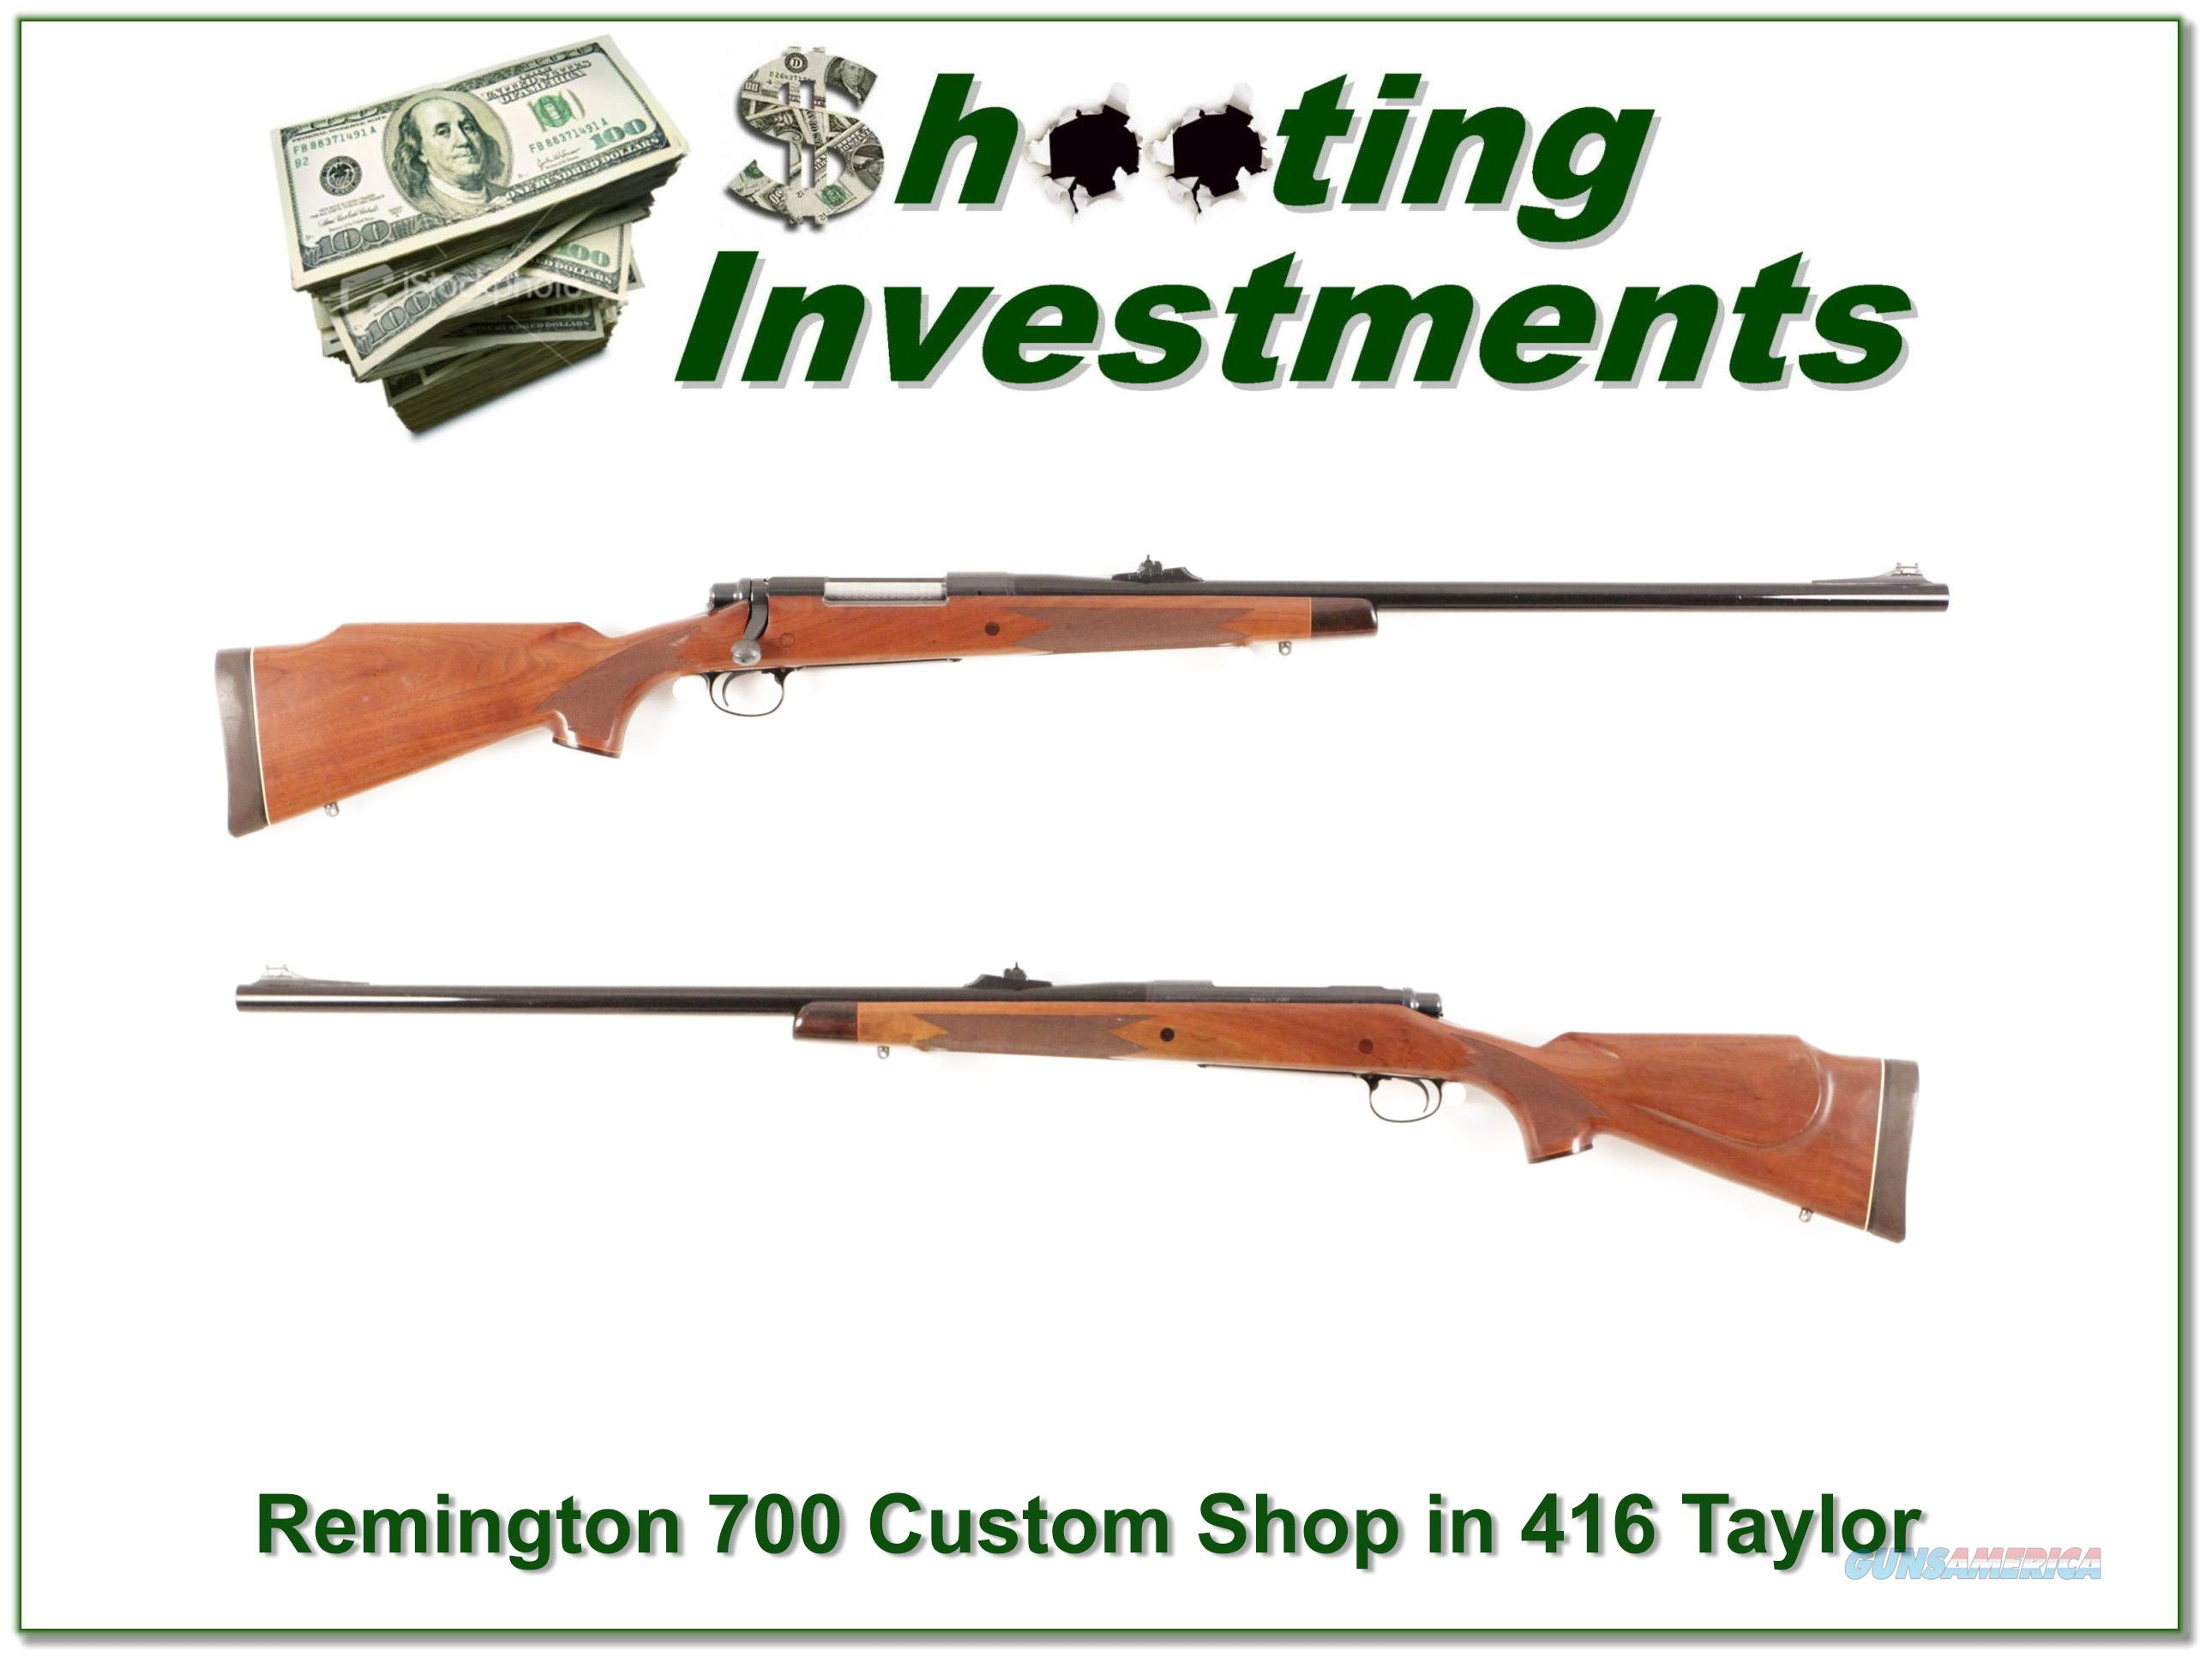 Remington 700 Custom Shop 416 Taylor  Guns > Rifles > Remington Rifles - Modern > Model 700 > Sporting